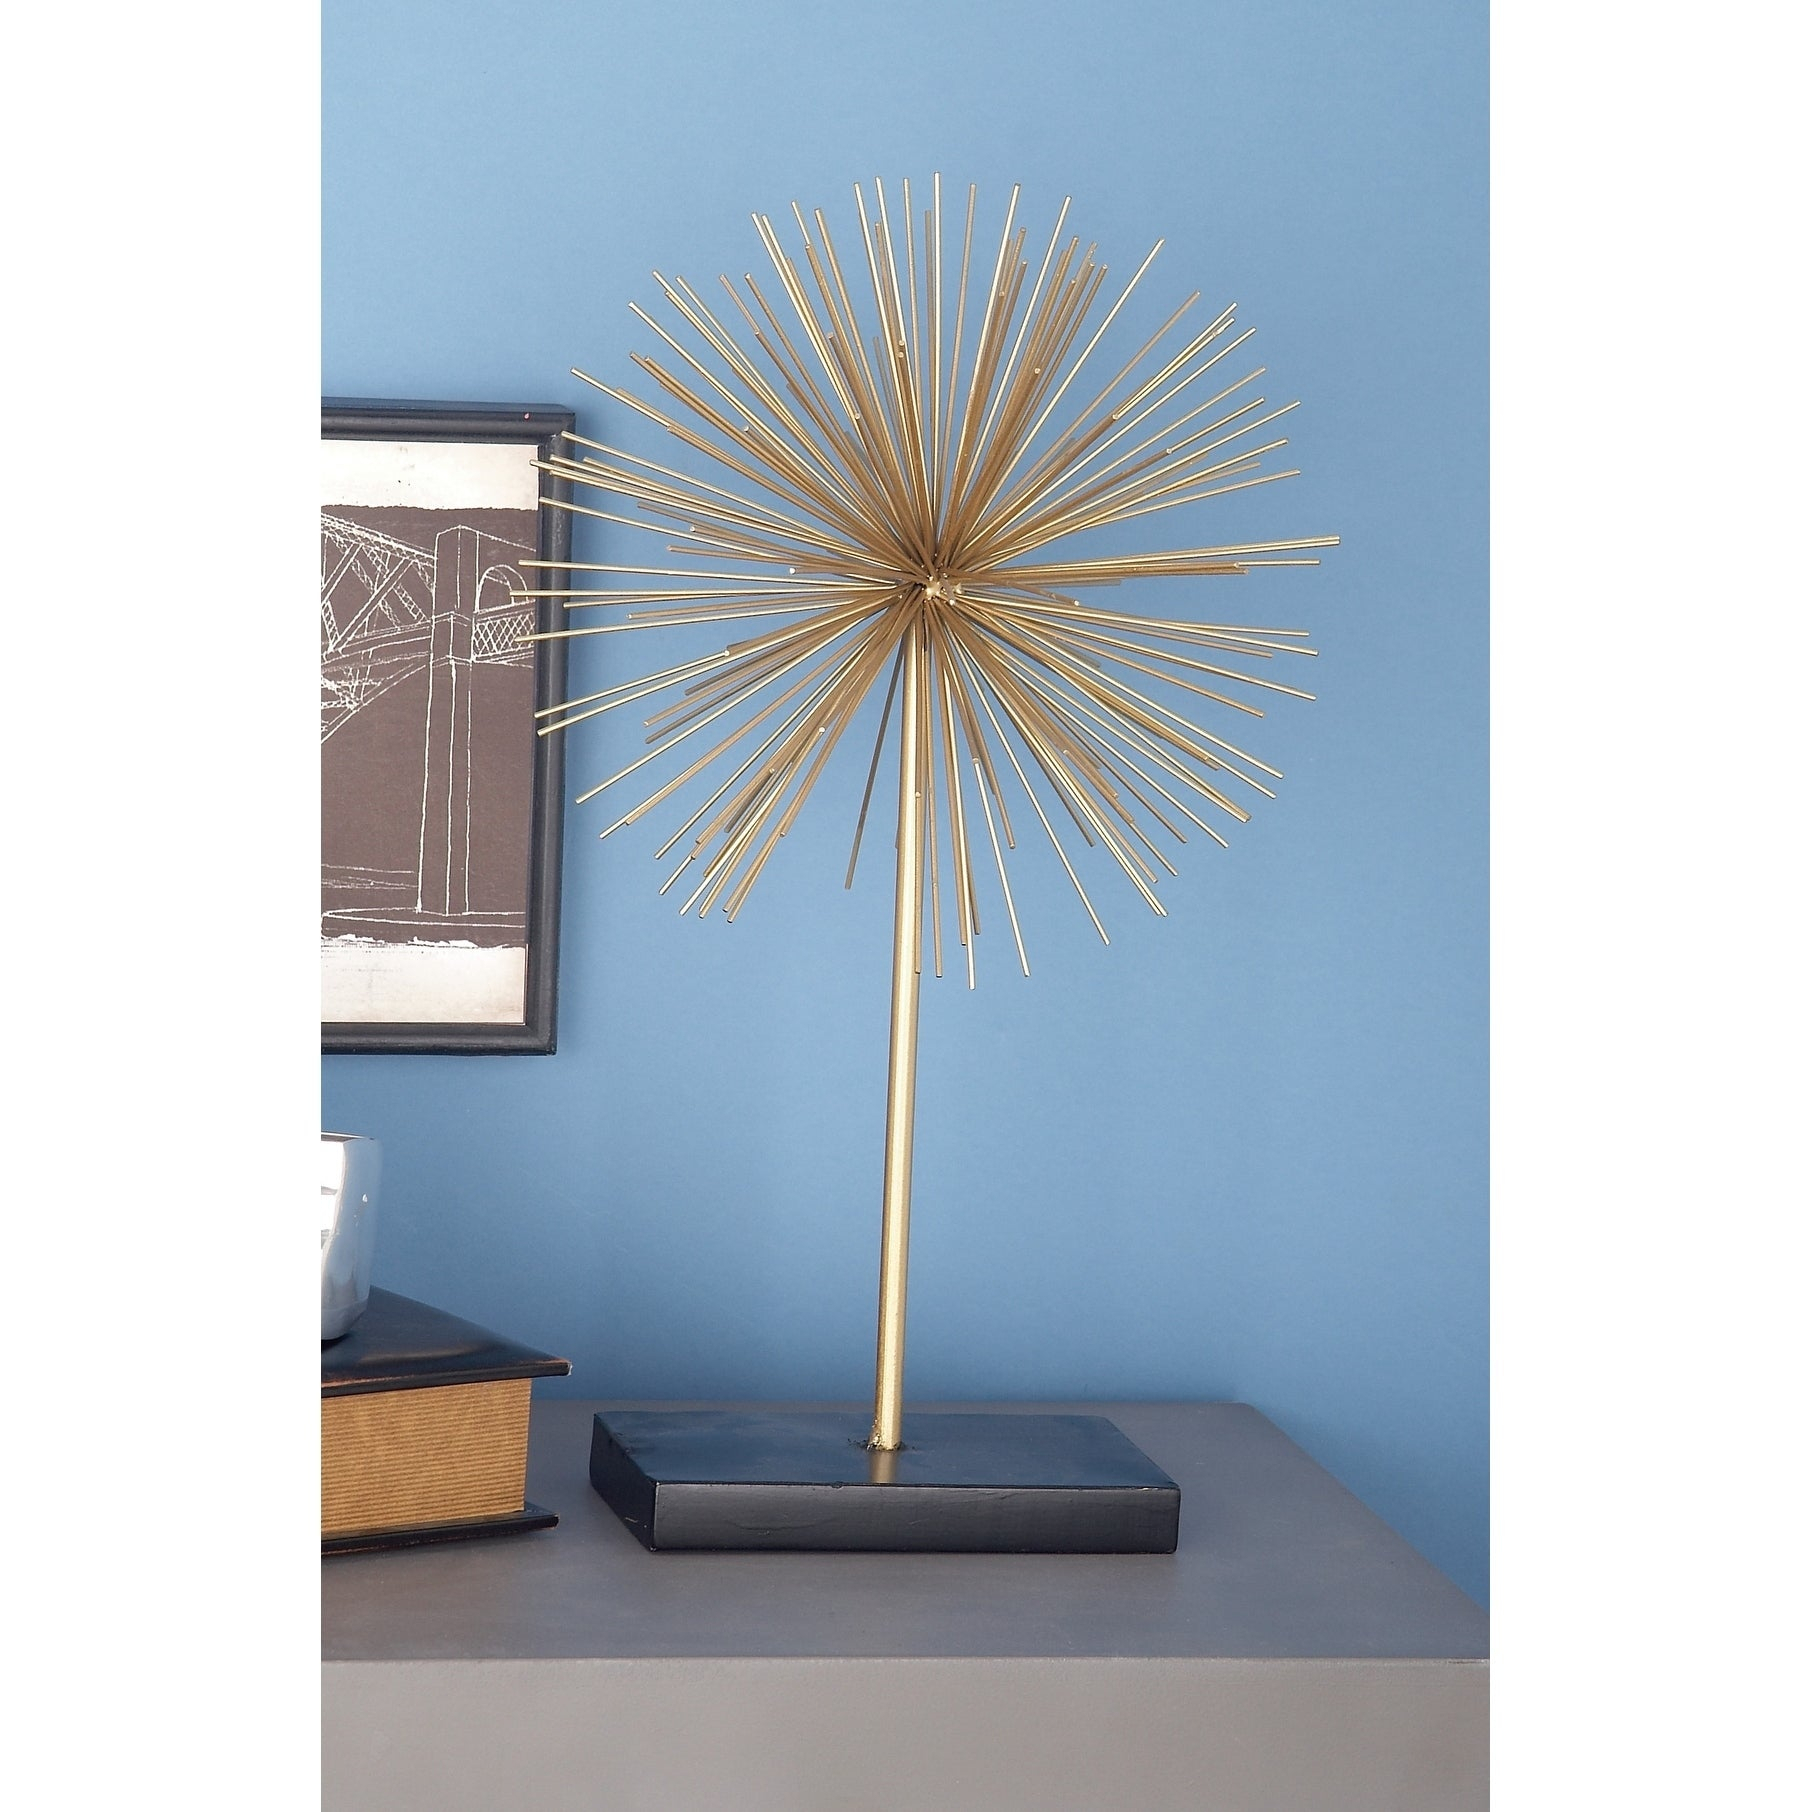 "Tall Contemporary Style 3d Round Gold Metal Starburst Sculptures On Black Stands Set Of 3 – 11"", 15"", 20"" Within Set Of 3 Contemporary 6, 9, And 11 Inch Gold Tin Starburst Sculptures (View 6 of 30)"